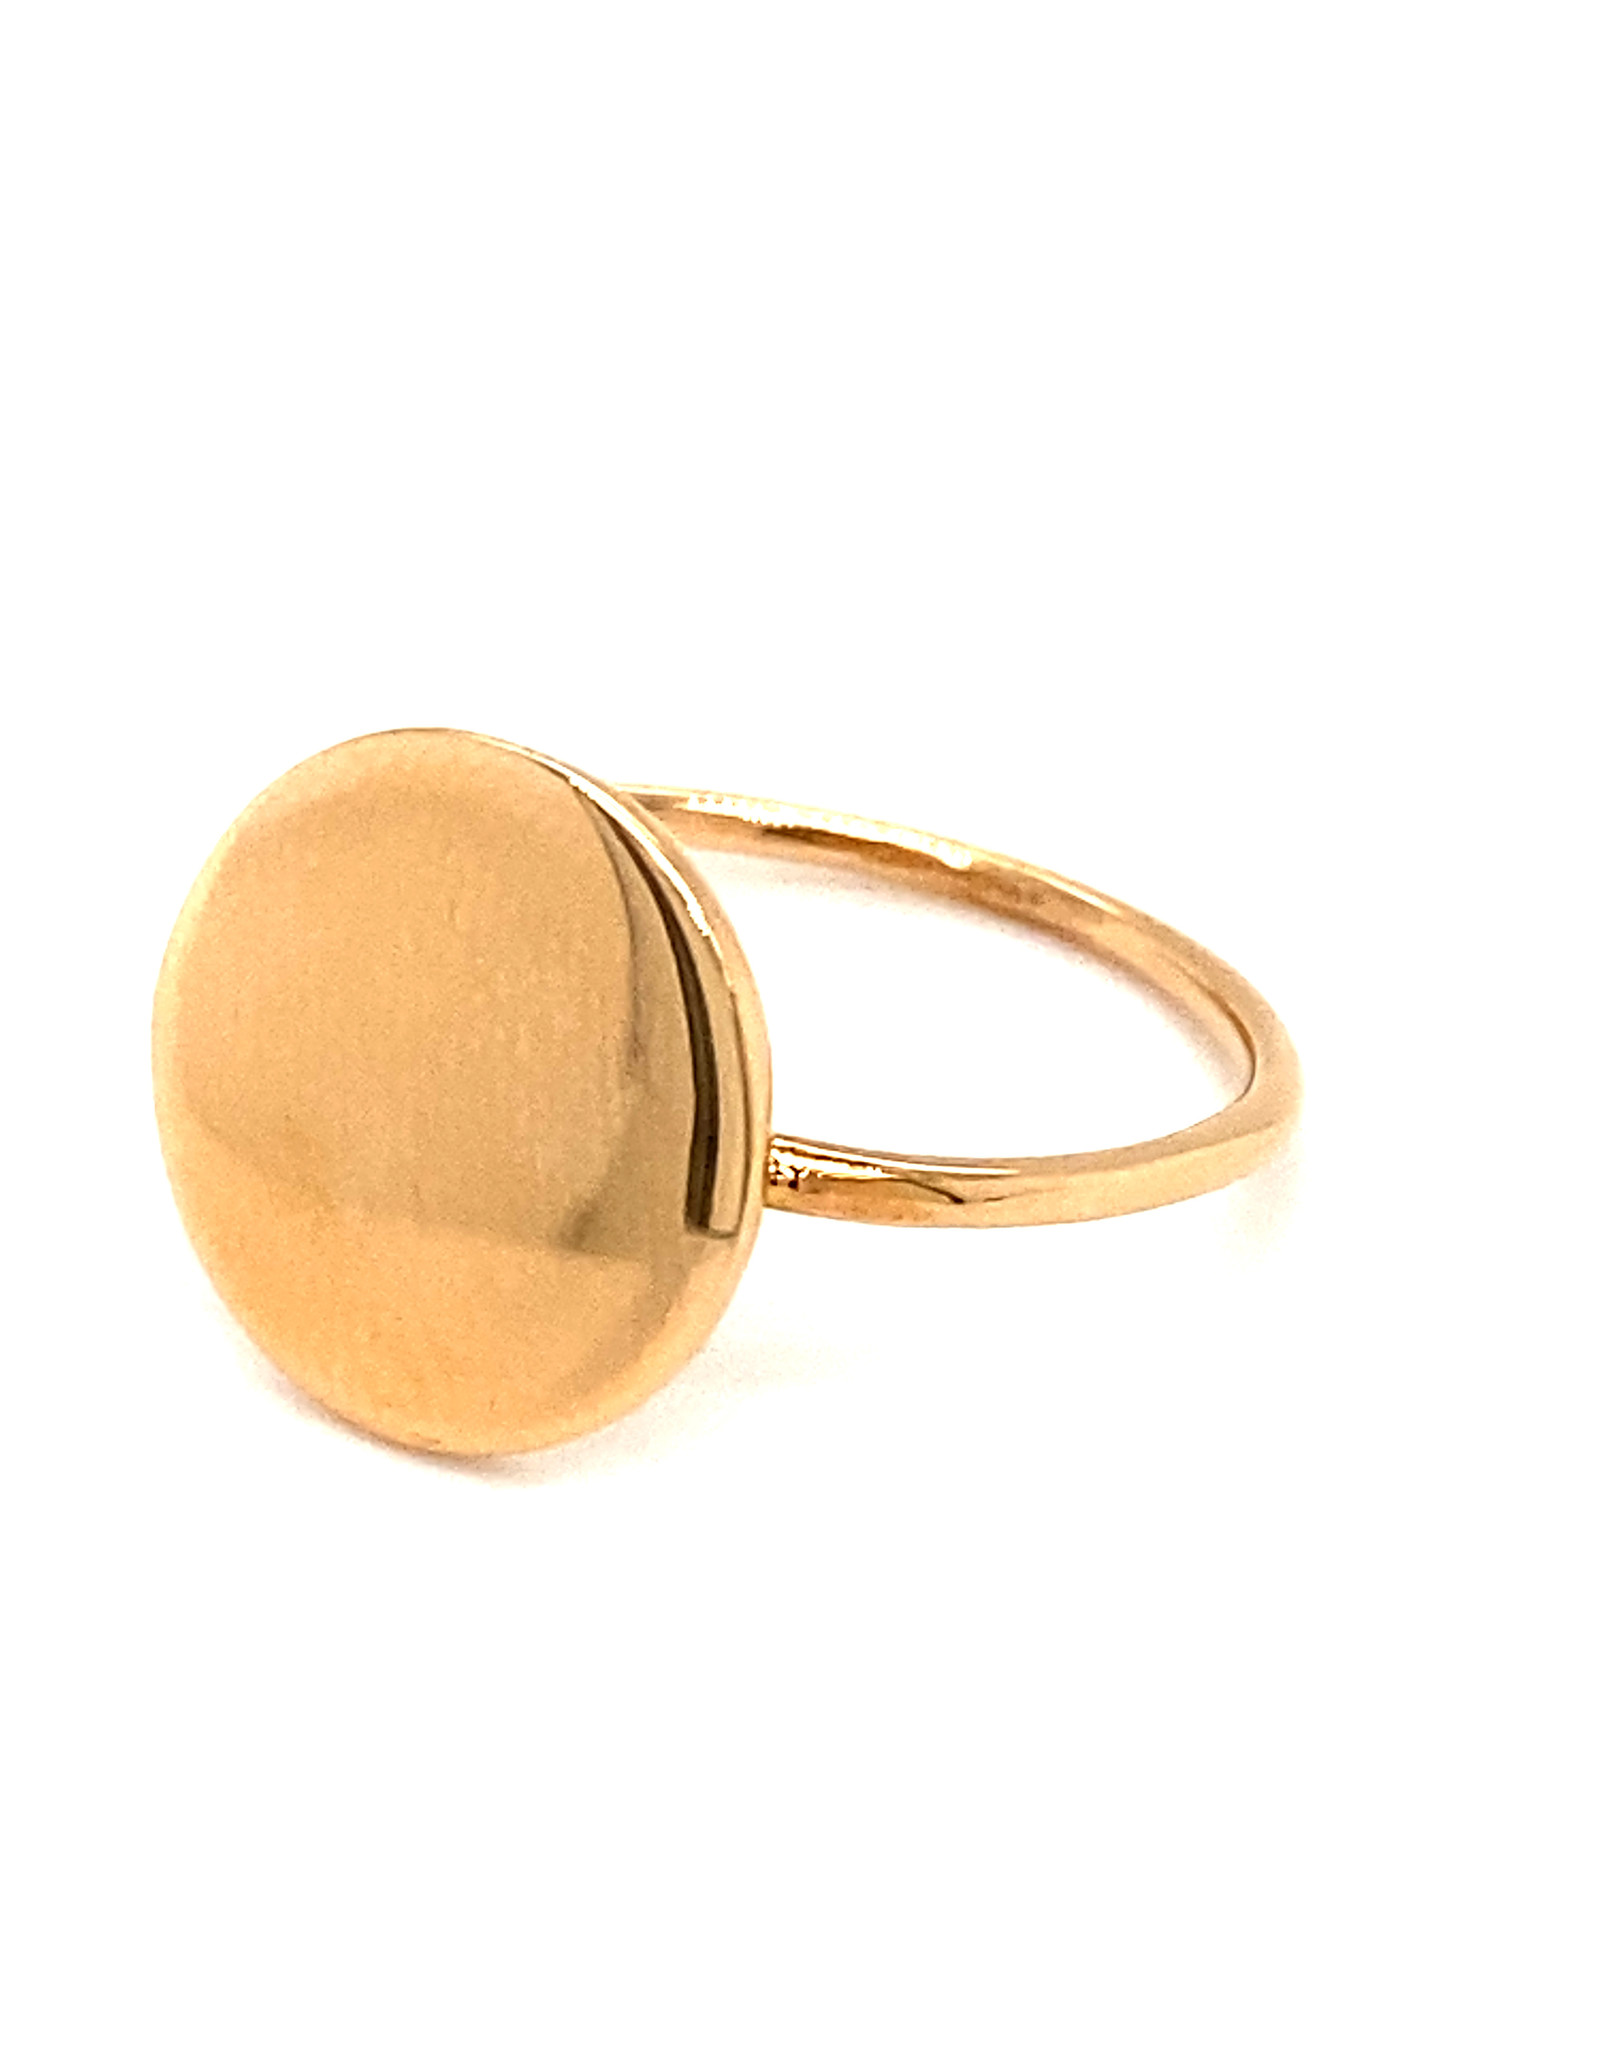 Ring rood goud